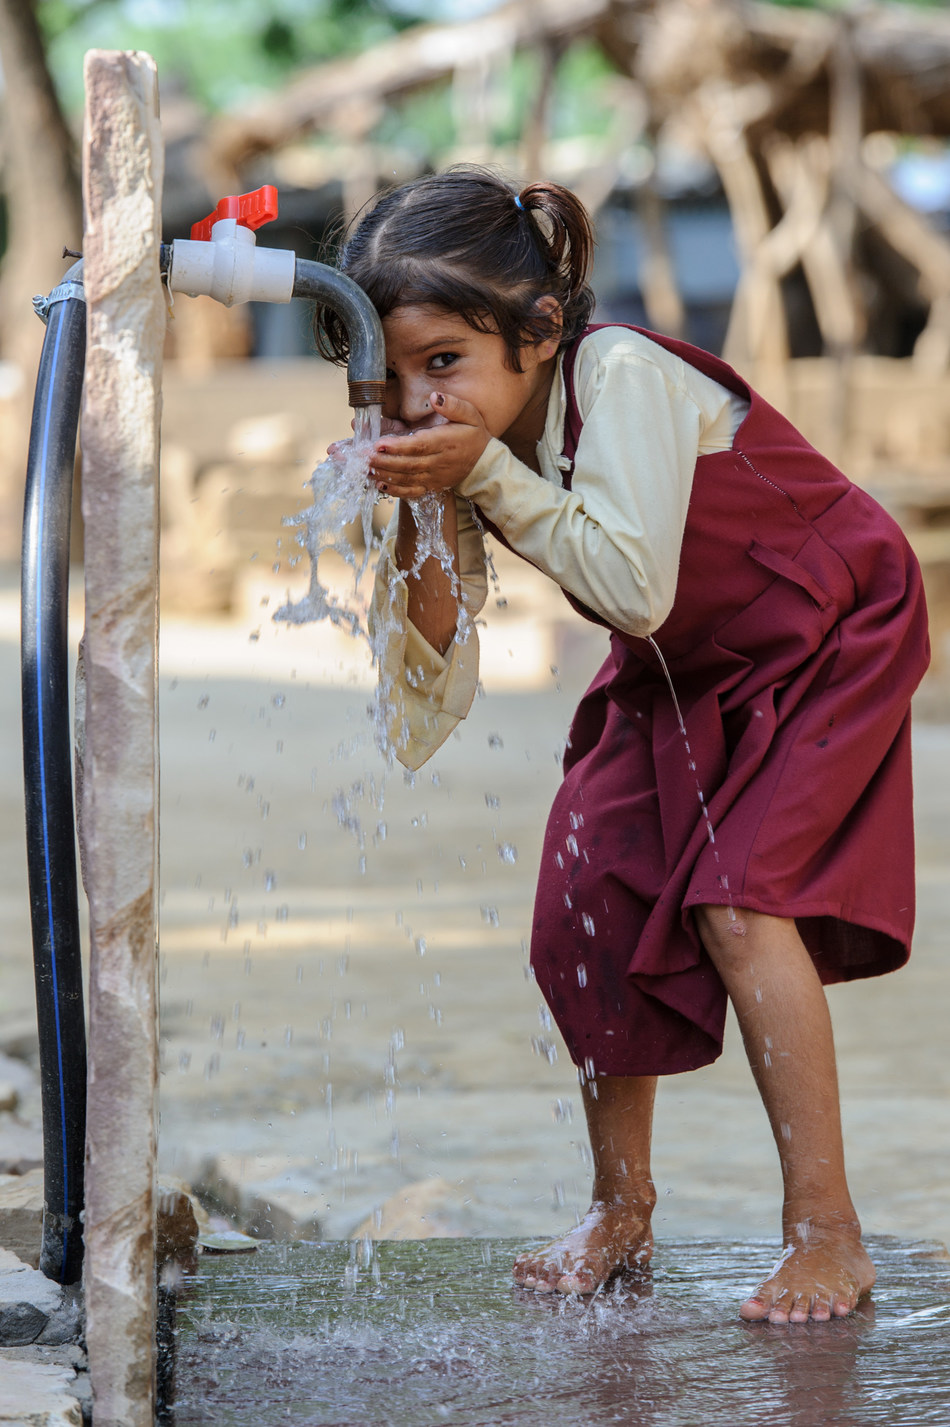 A young girl drinks clean water from a hand pump now available in Mahadev Pura village, Madhya Pradesh, India. Through a WaterAid project, all local homes now have toilets and handwashing is regularly practiced, greatly reducing the rate of illness, especially among women and children. (WaterAid/ James McCauley)